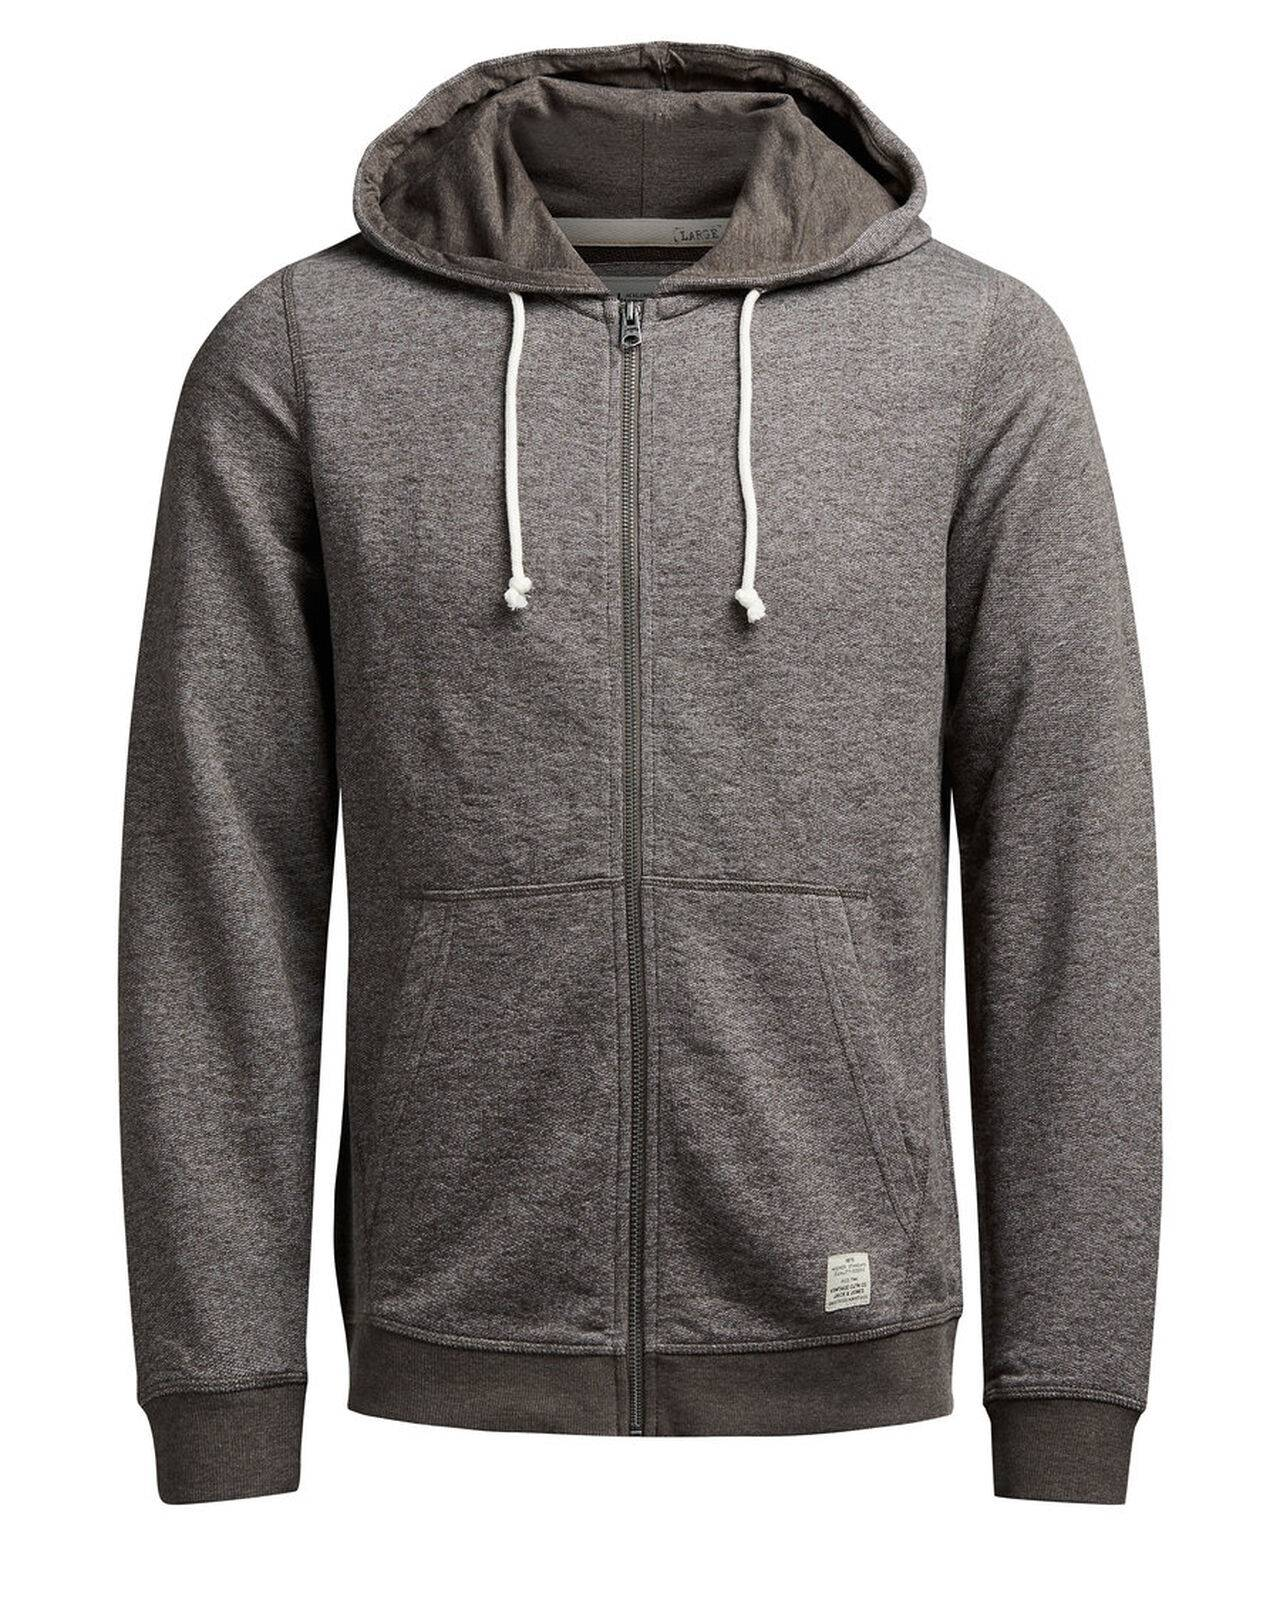 Jack & Jones Hooded Zip Through Sweatshirt BlackOlive